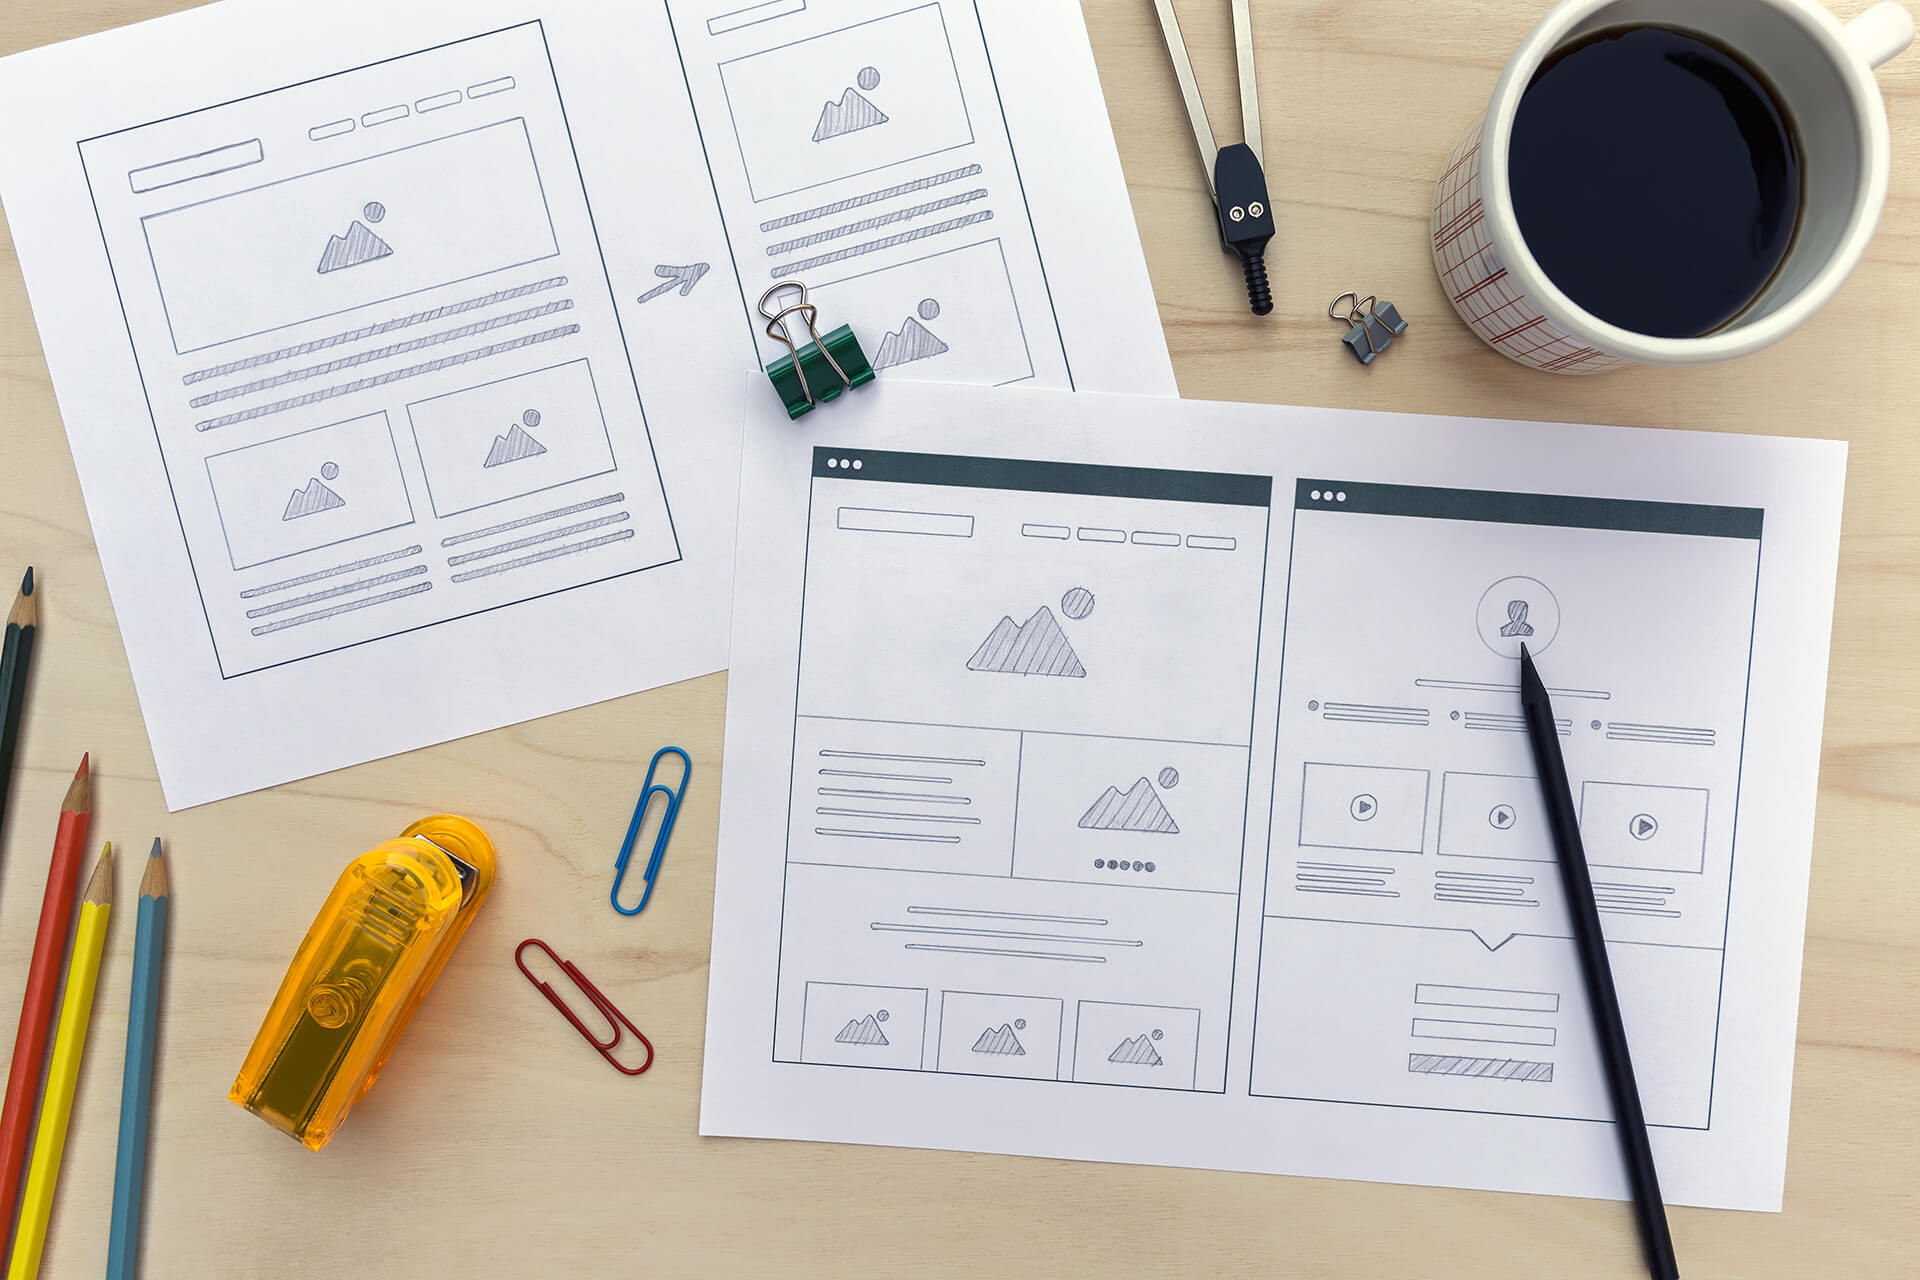 Website mockup using wireframe prototyping